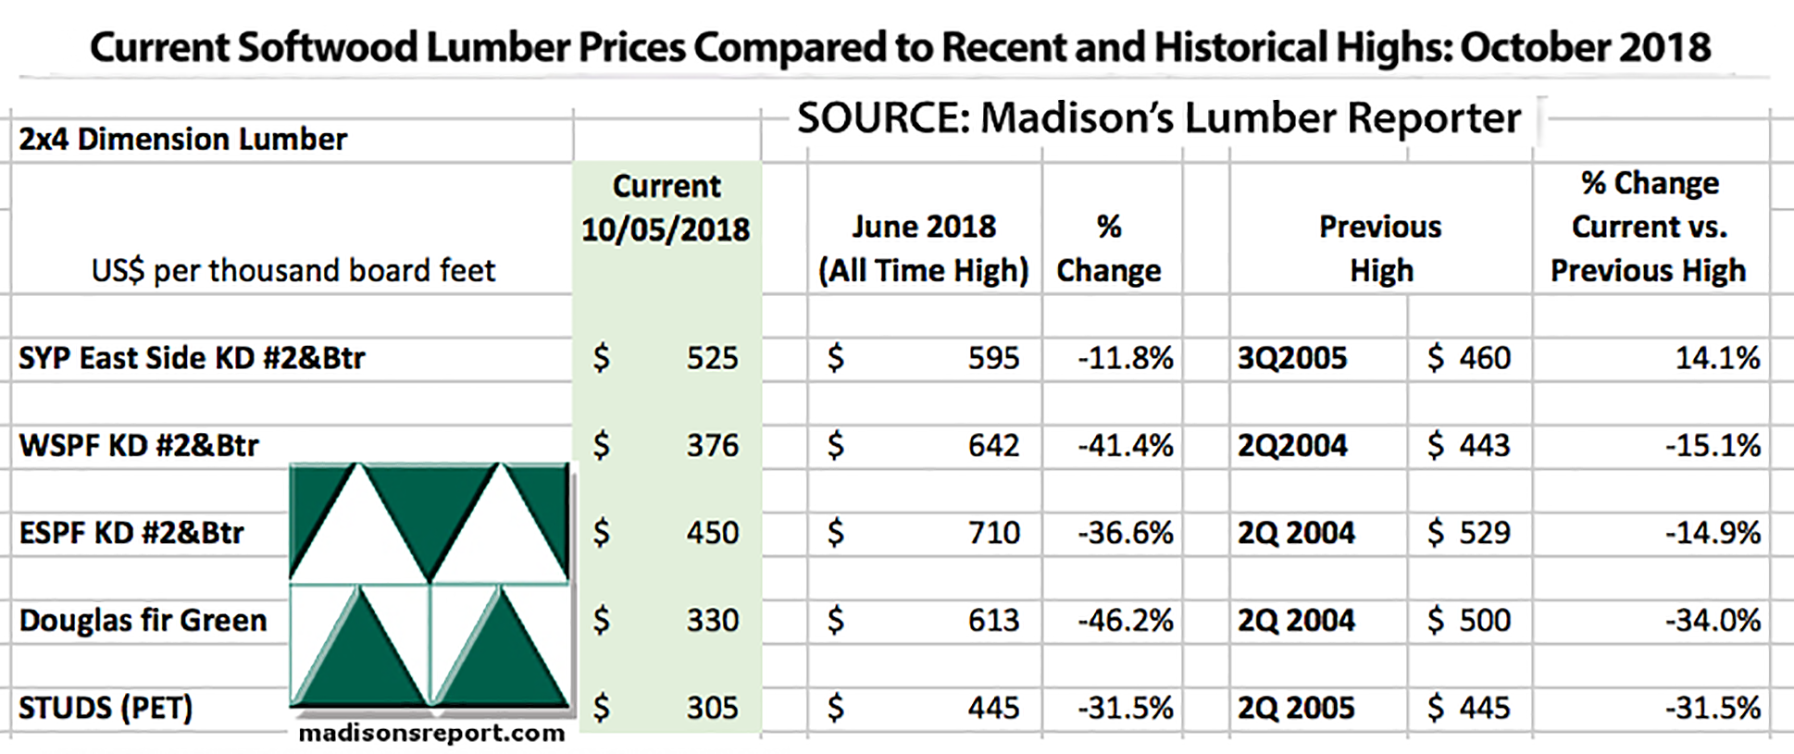 New Developments Affecting North American Softwood Lumber Prices